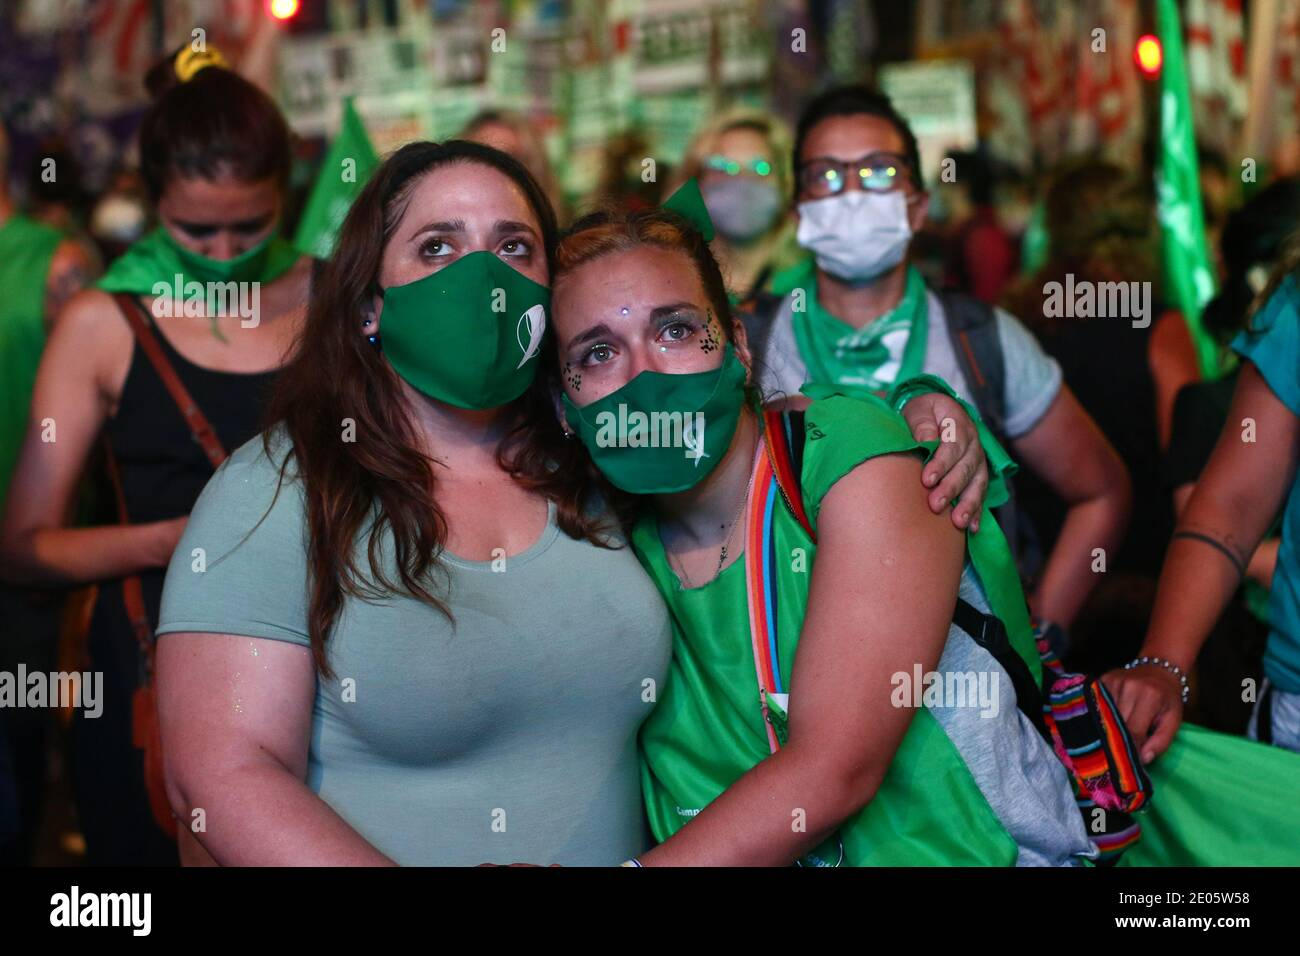 BUENOS AIRES 30.12.2020: Demonstrators  celebrate  approval and enactment of the law of voluntary interruption of pregnancy Buenos Aires, Argentina Stock Photo